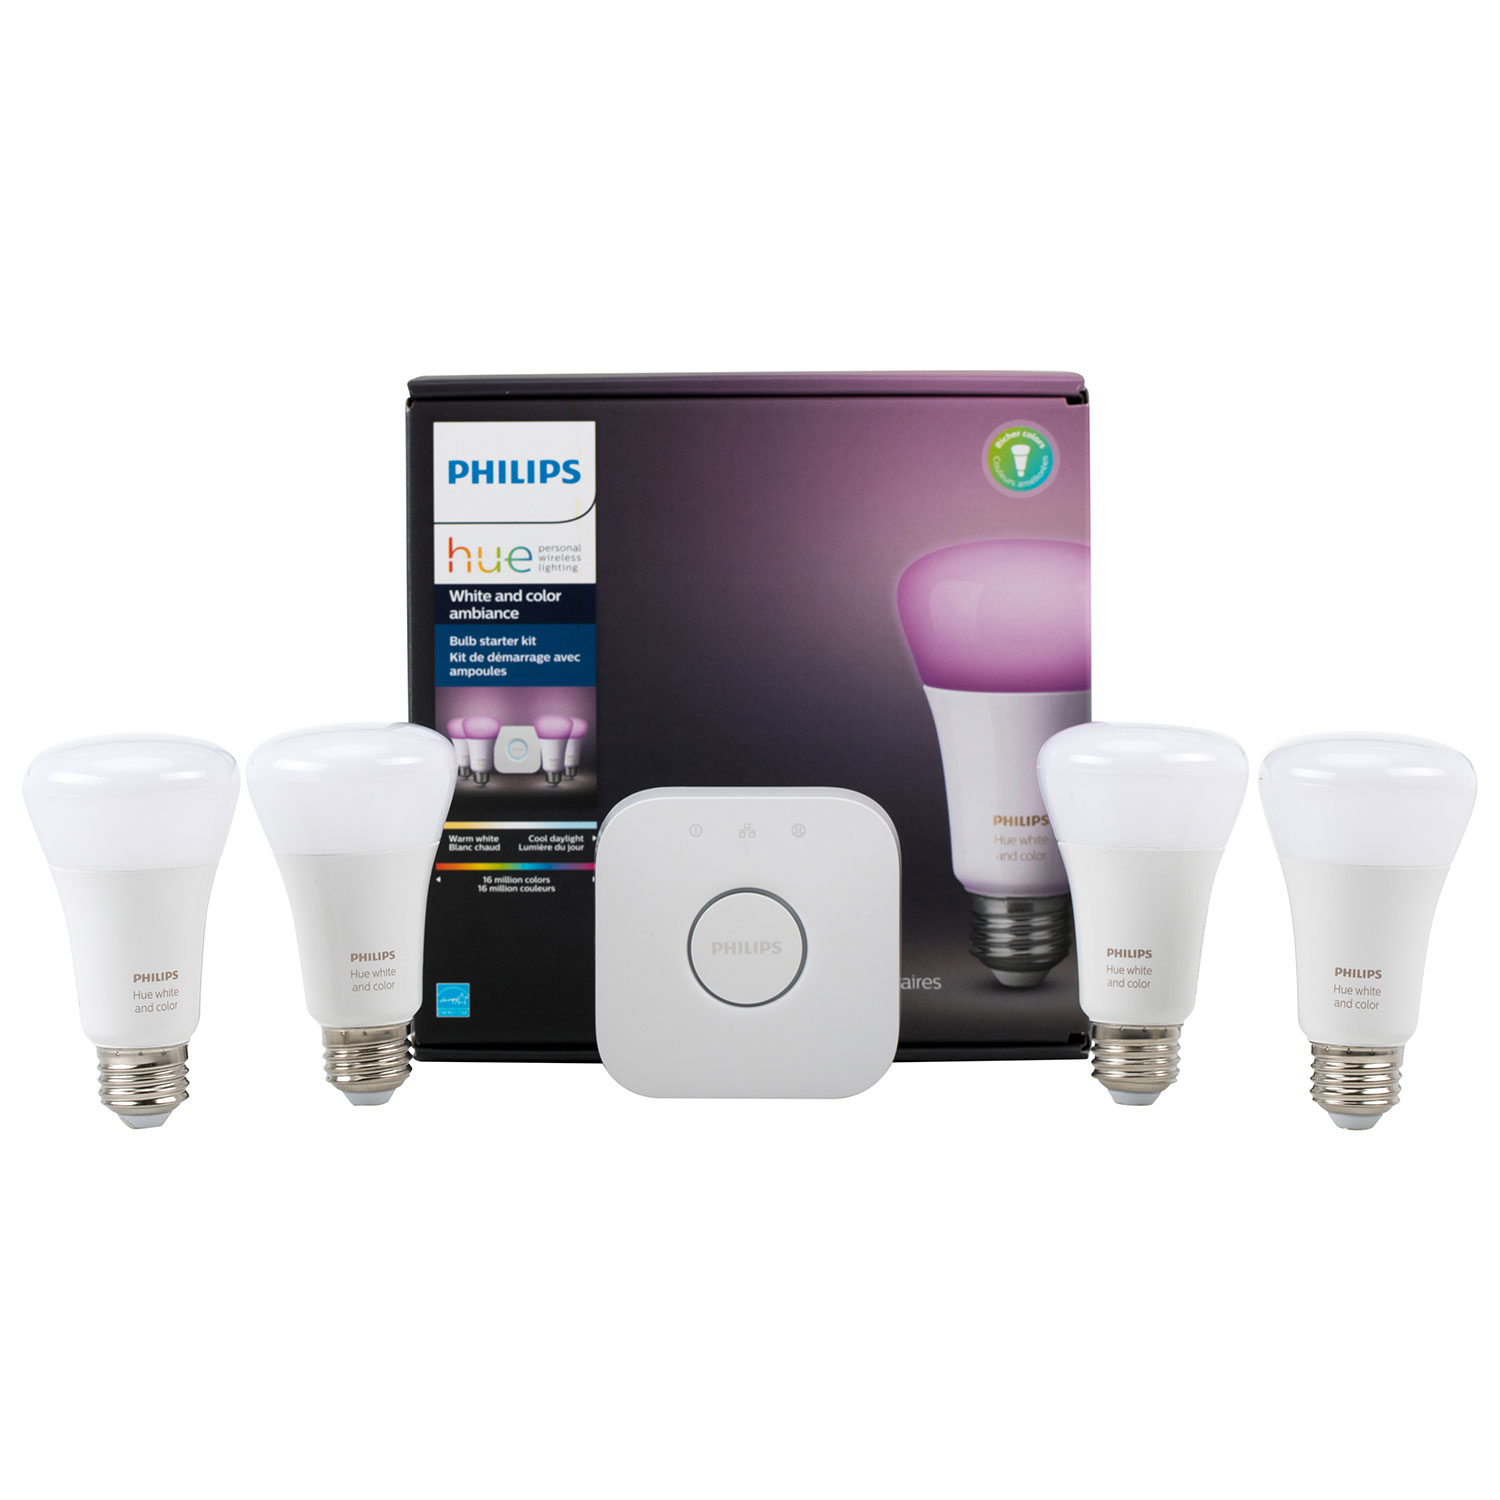 Smart Lighting Switches Plugs Best Buy Canada The Clapper Sound Activated On Off Switch 1 Each Philips Hue White Colour A19 Starter Kit